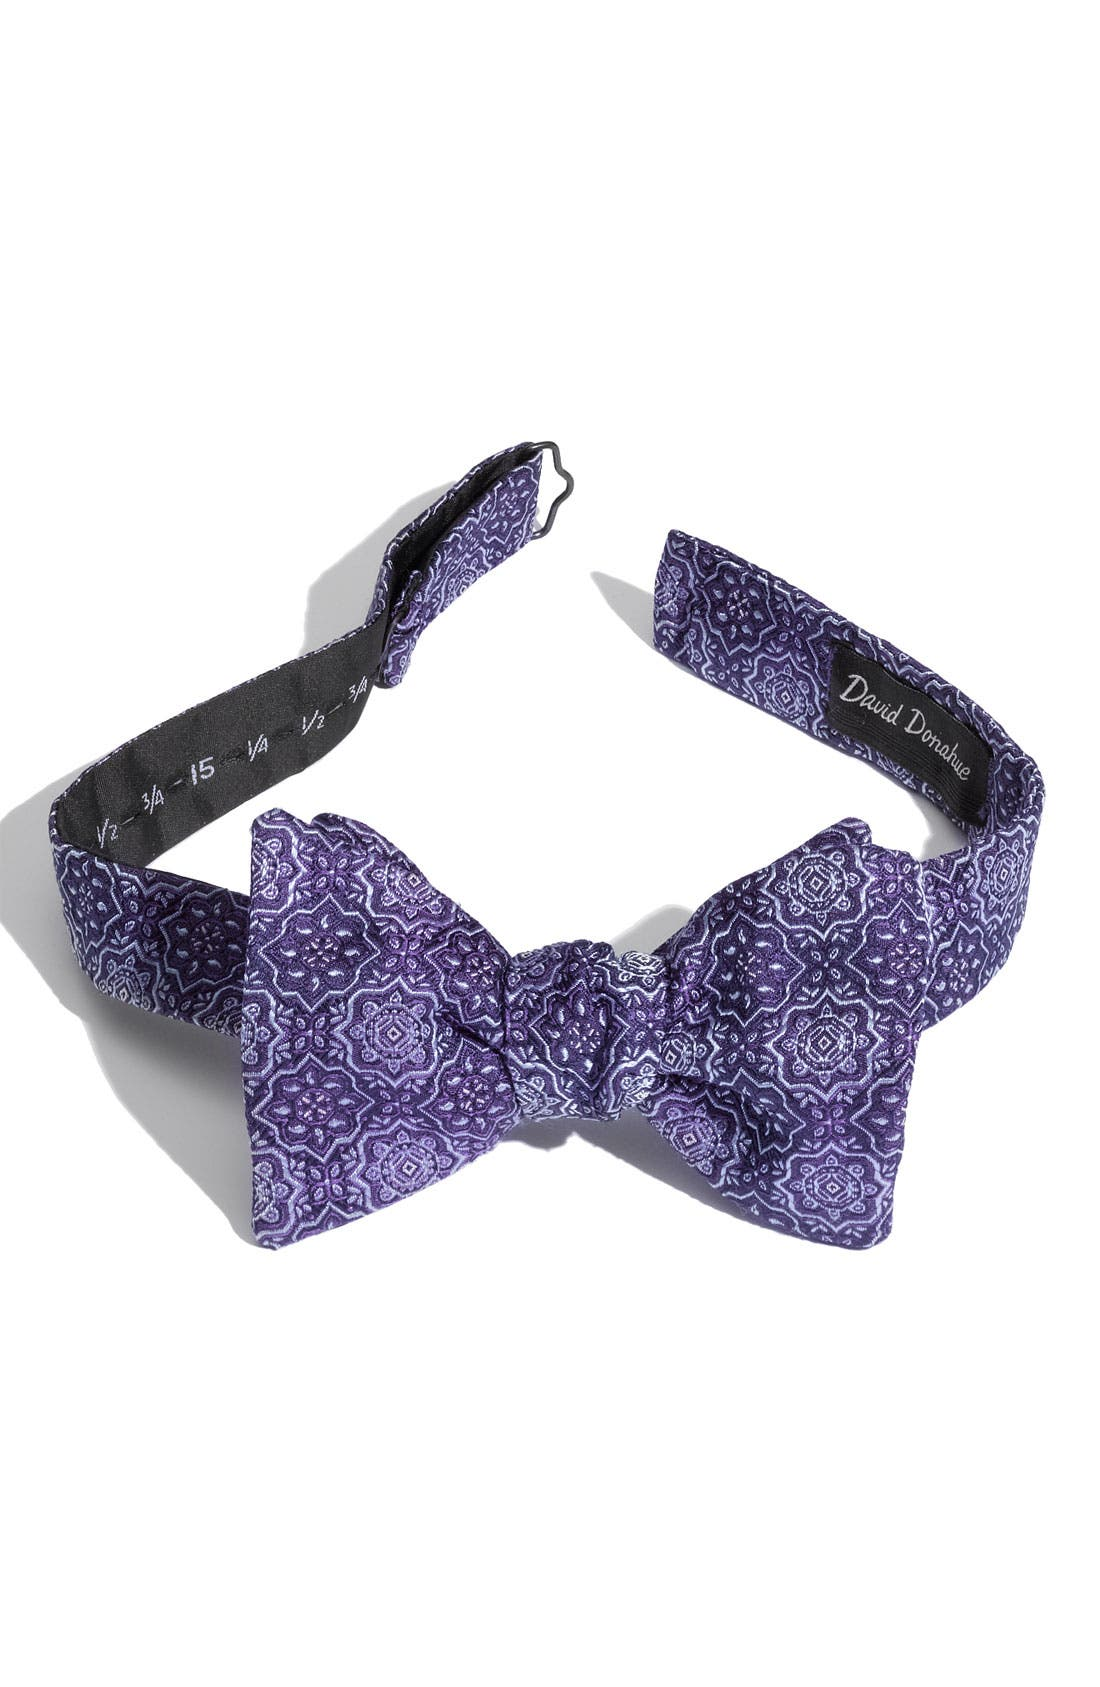 Main Image - David Donahue Bow Tie